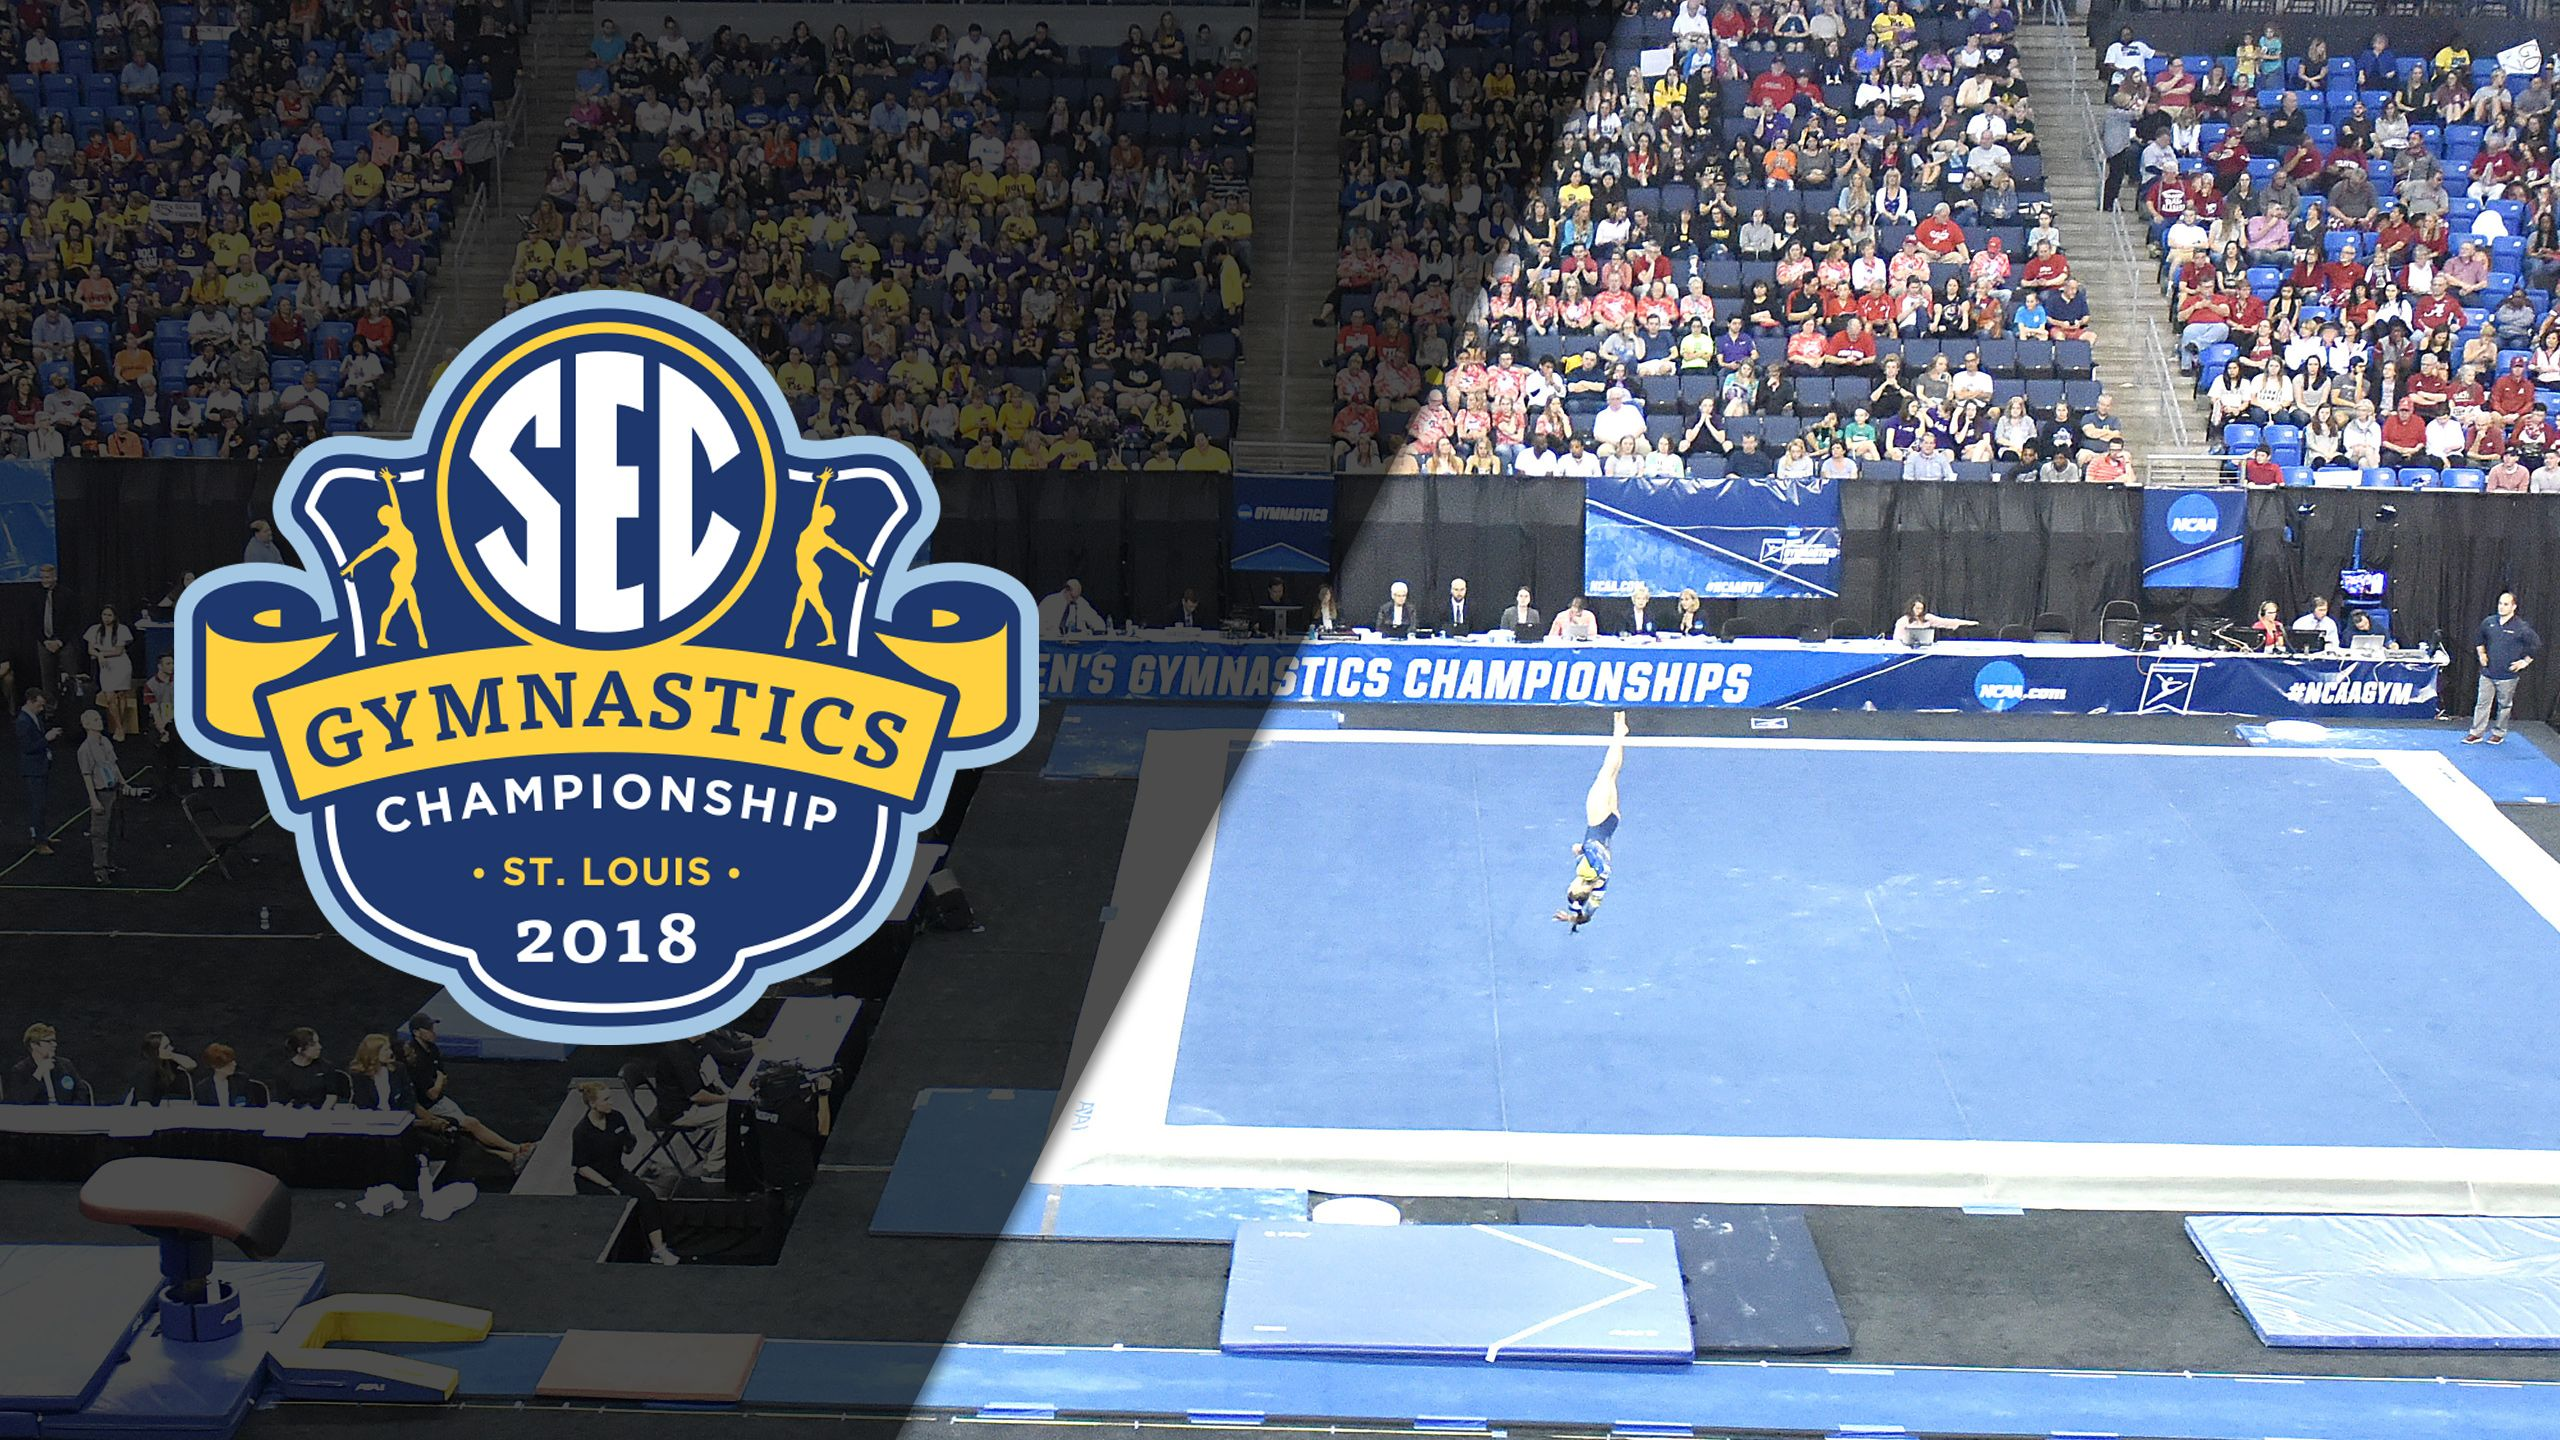 SEC Gymnastics Championship - Floor (Afternoon Session)